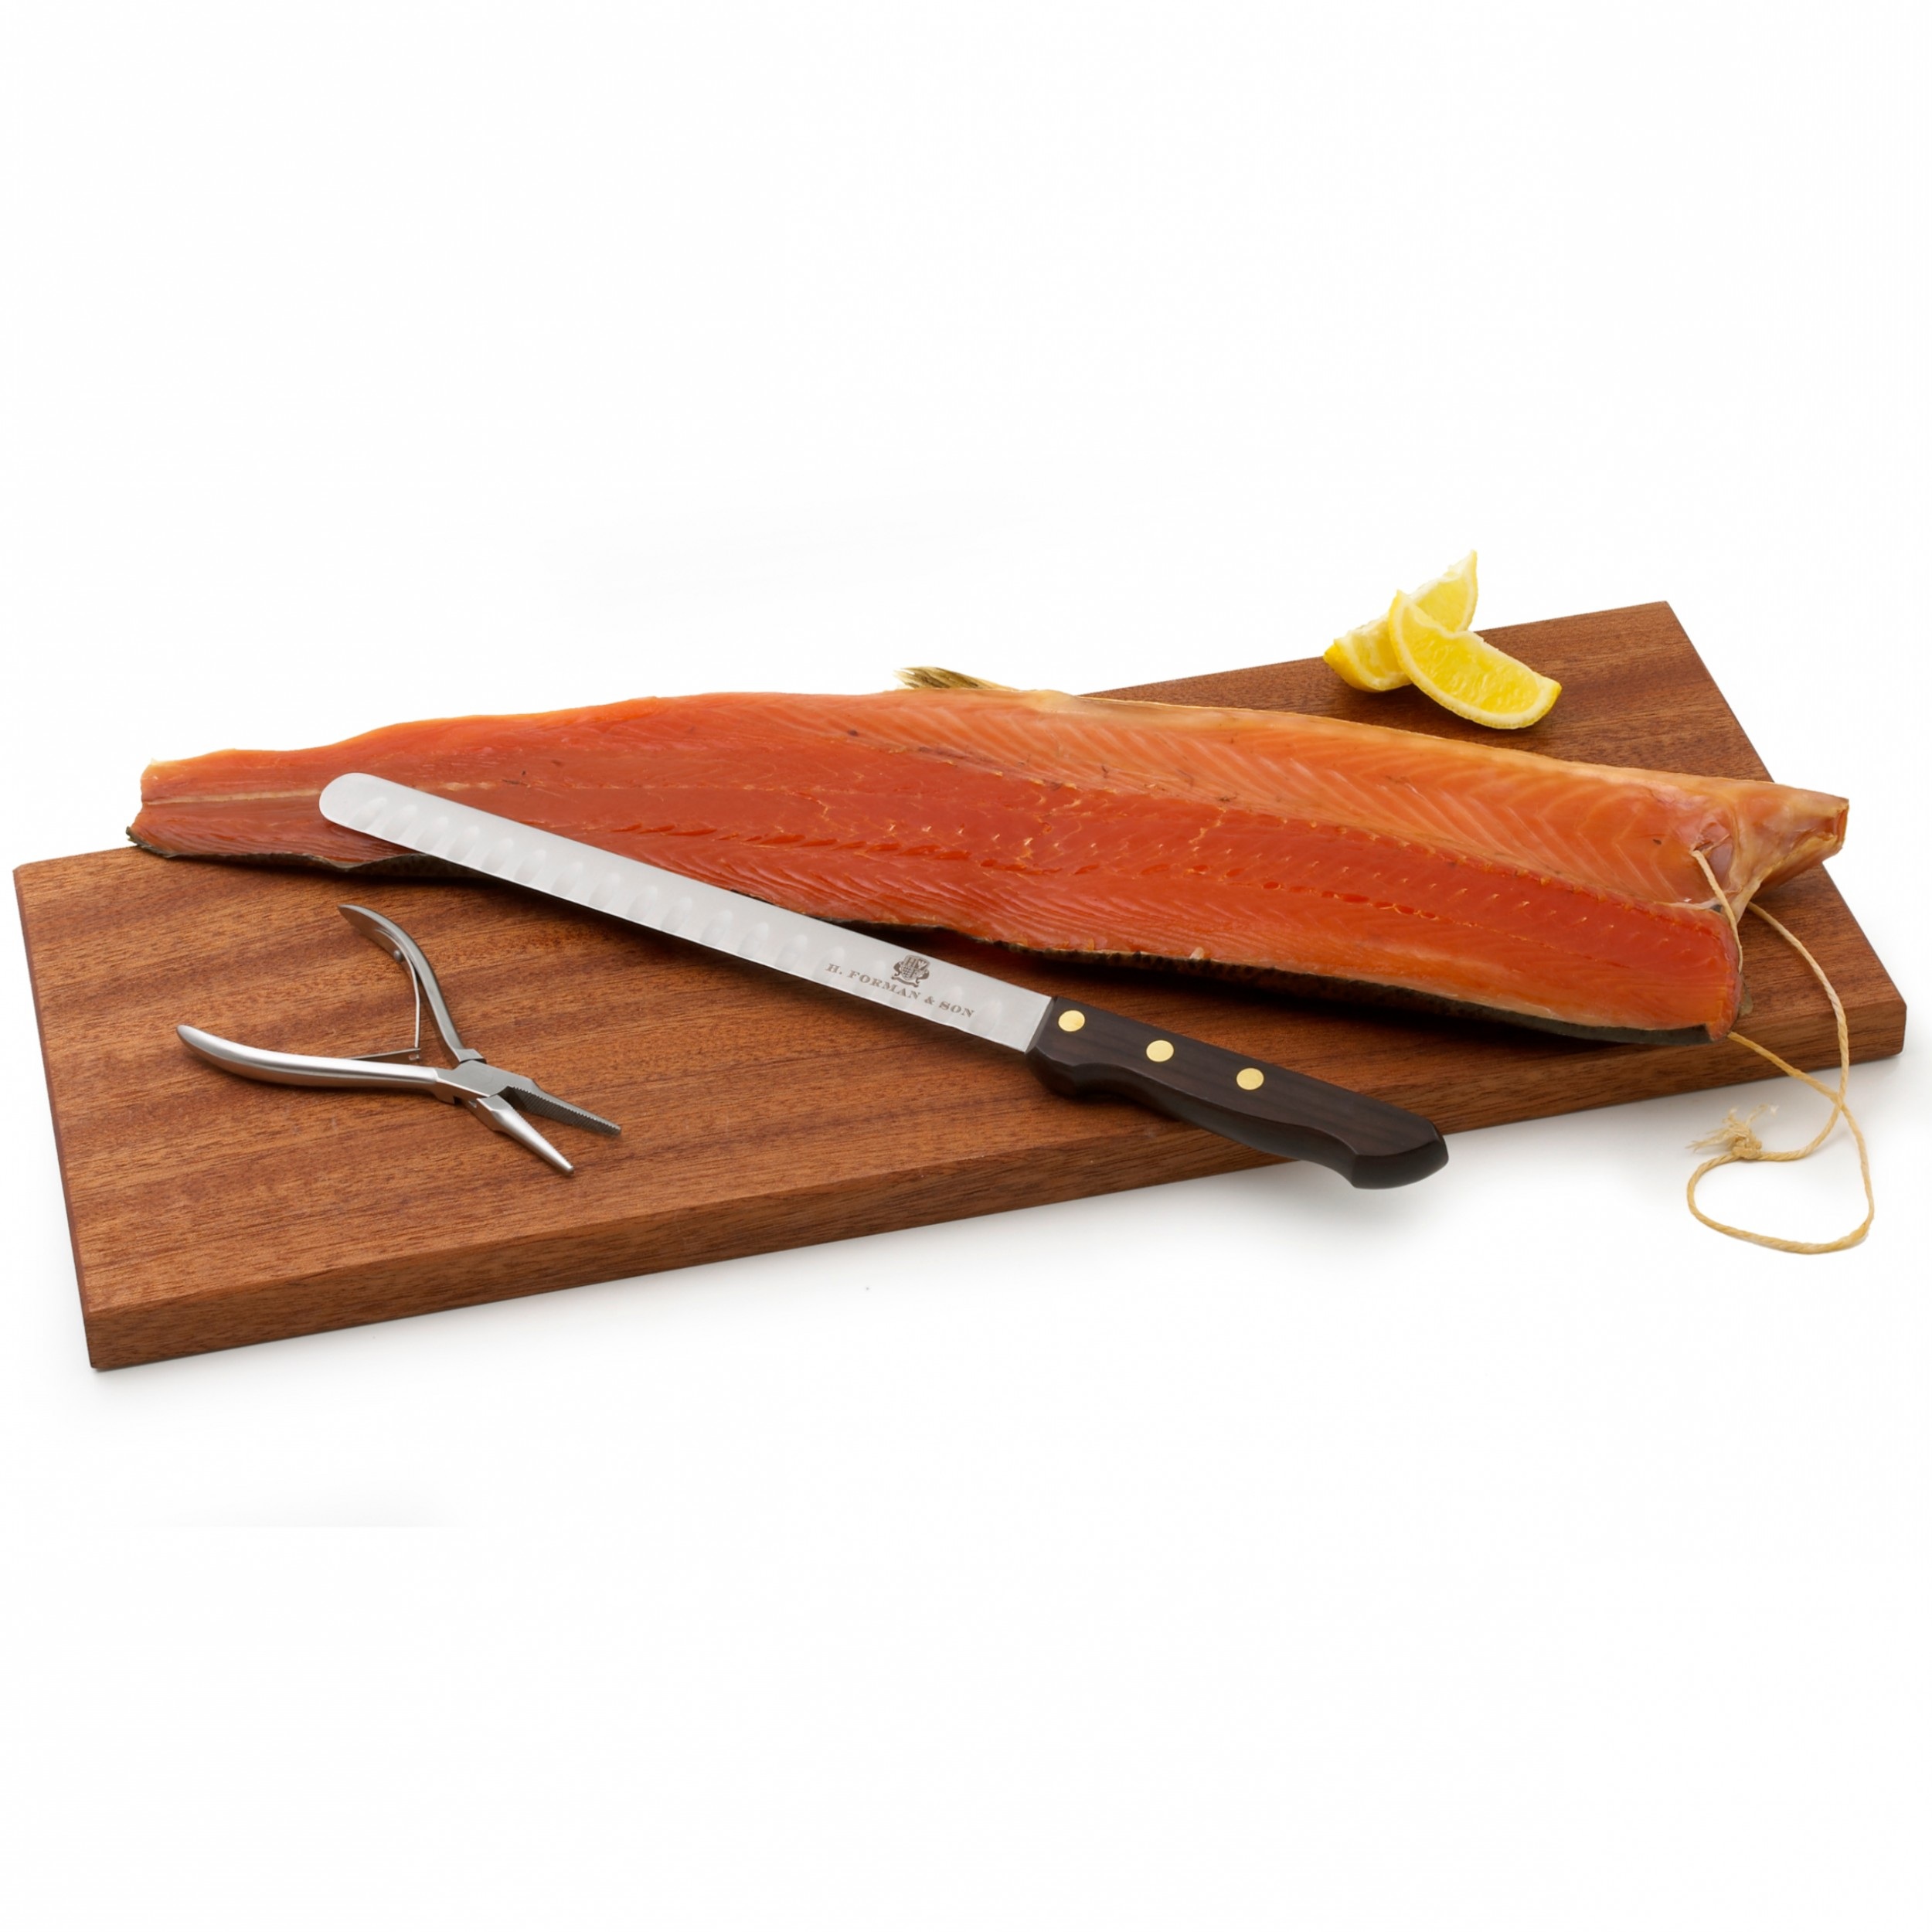 Image of Forman's Smoked Salmon Carving Knife and Kit